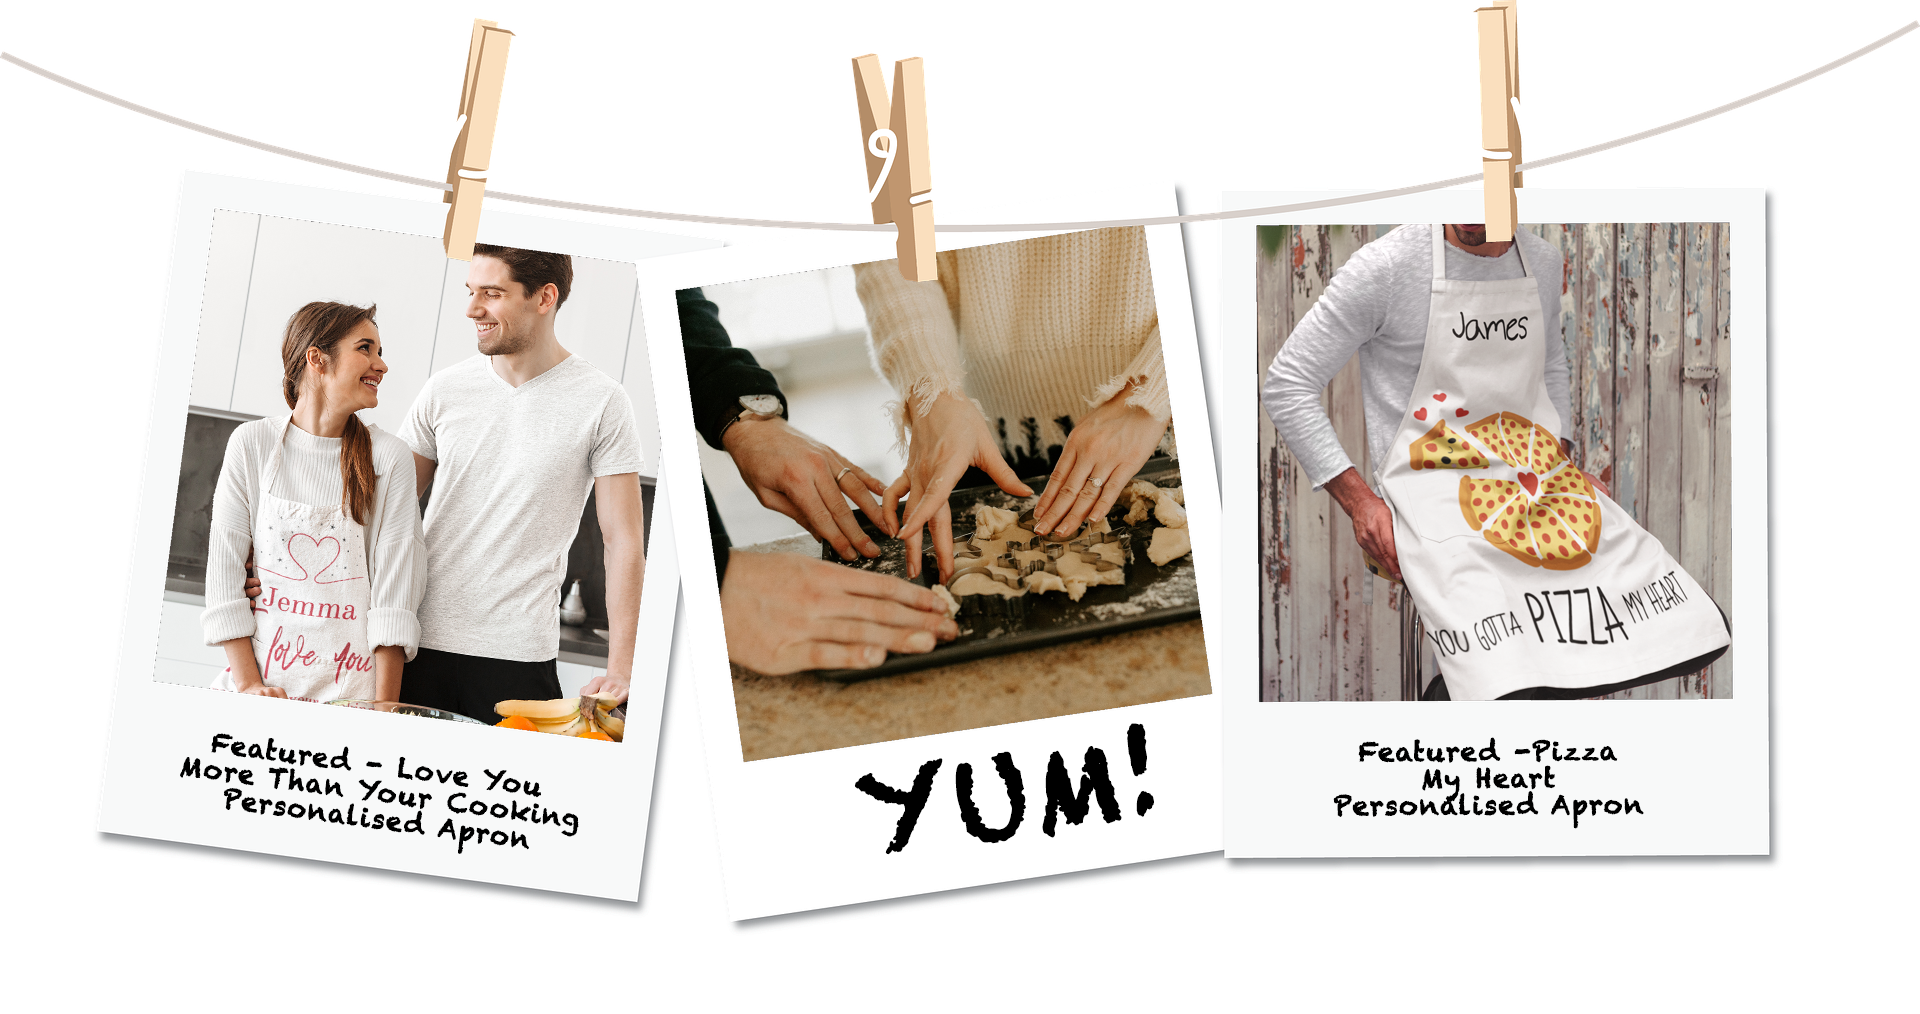 Personalised Aprons and Cooking